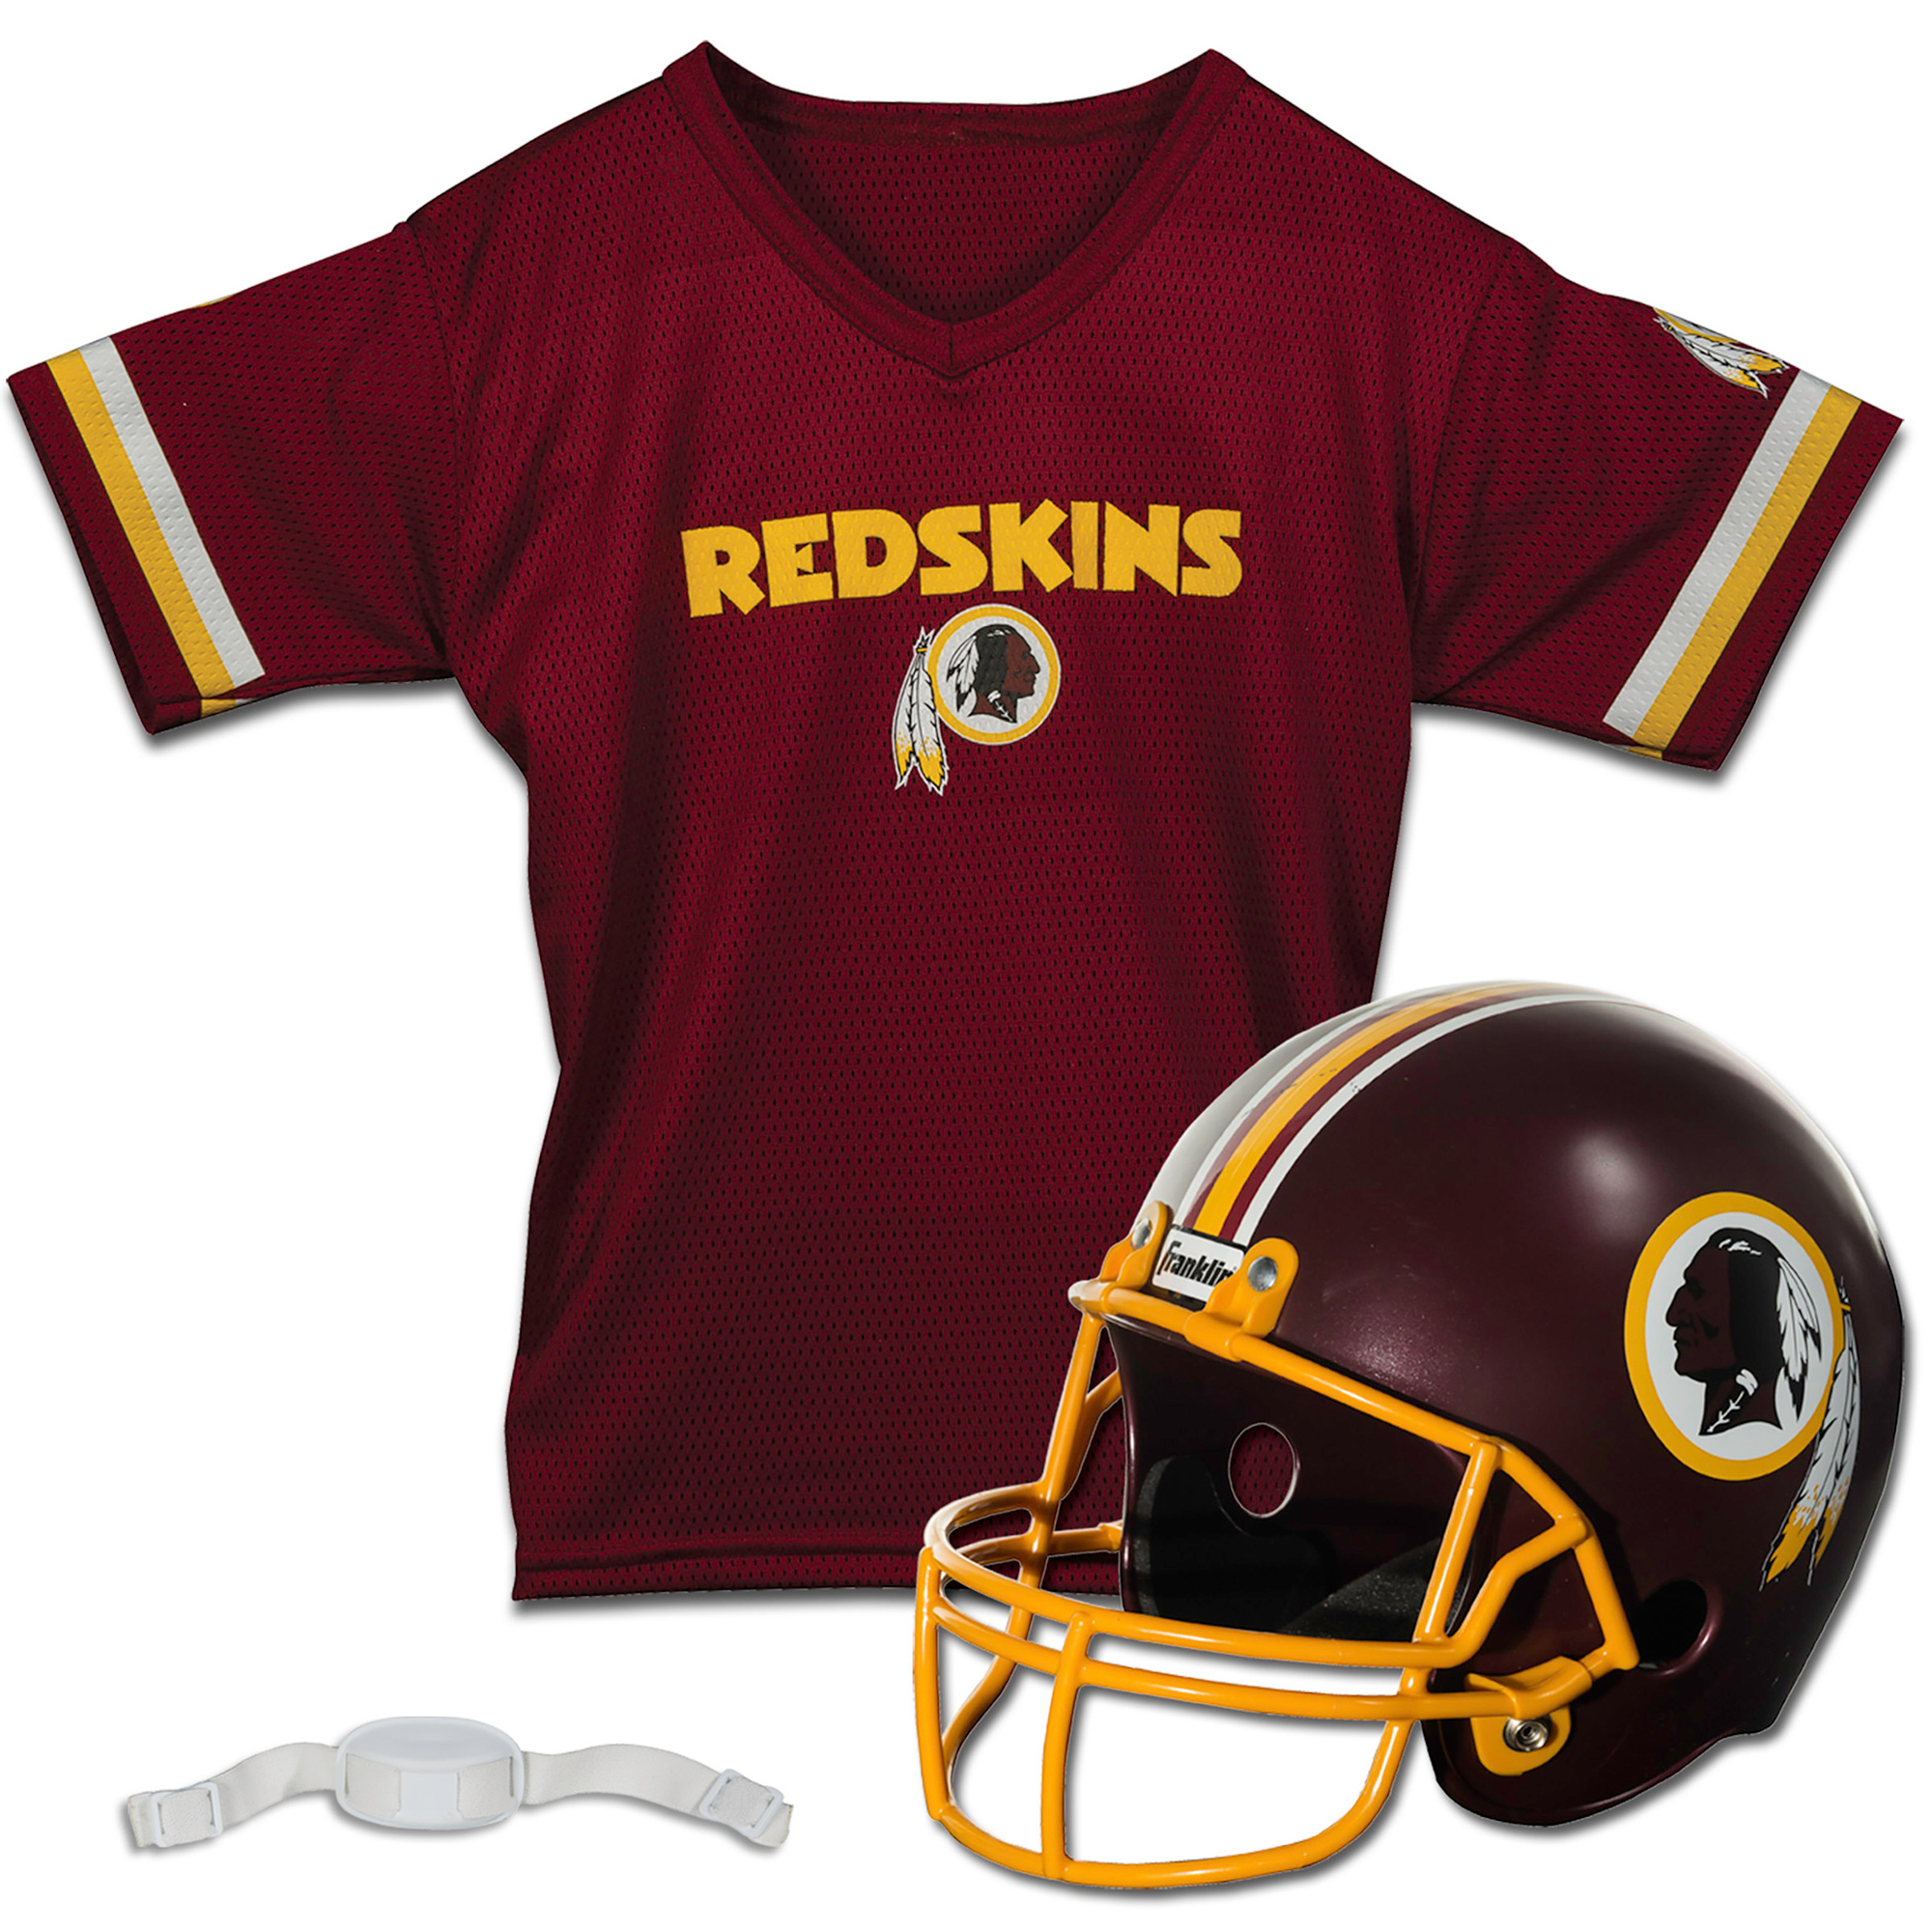 Washington Redskins Franklin Sports Youth Helmet and Jersey Set - No Size